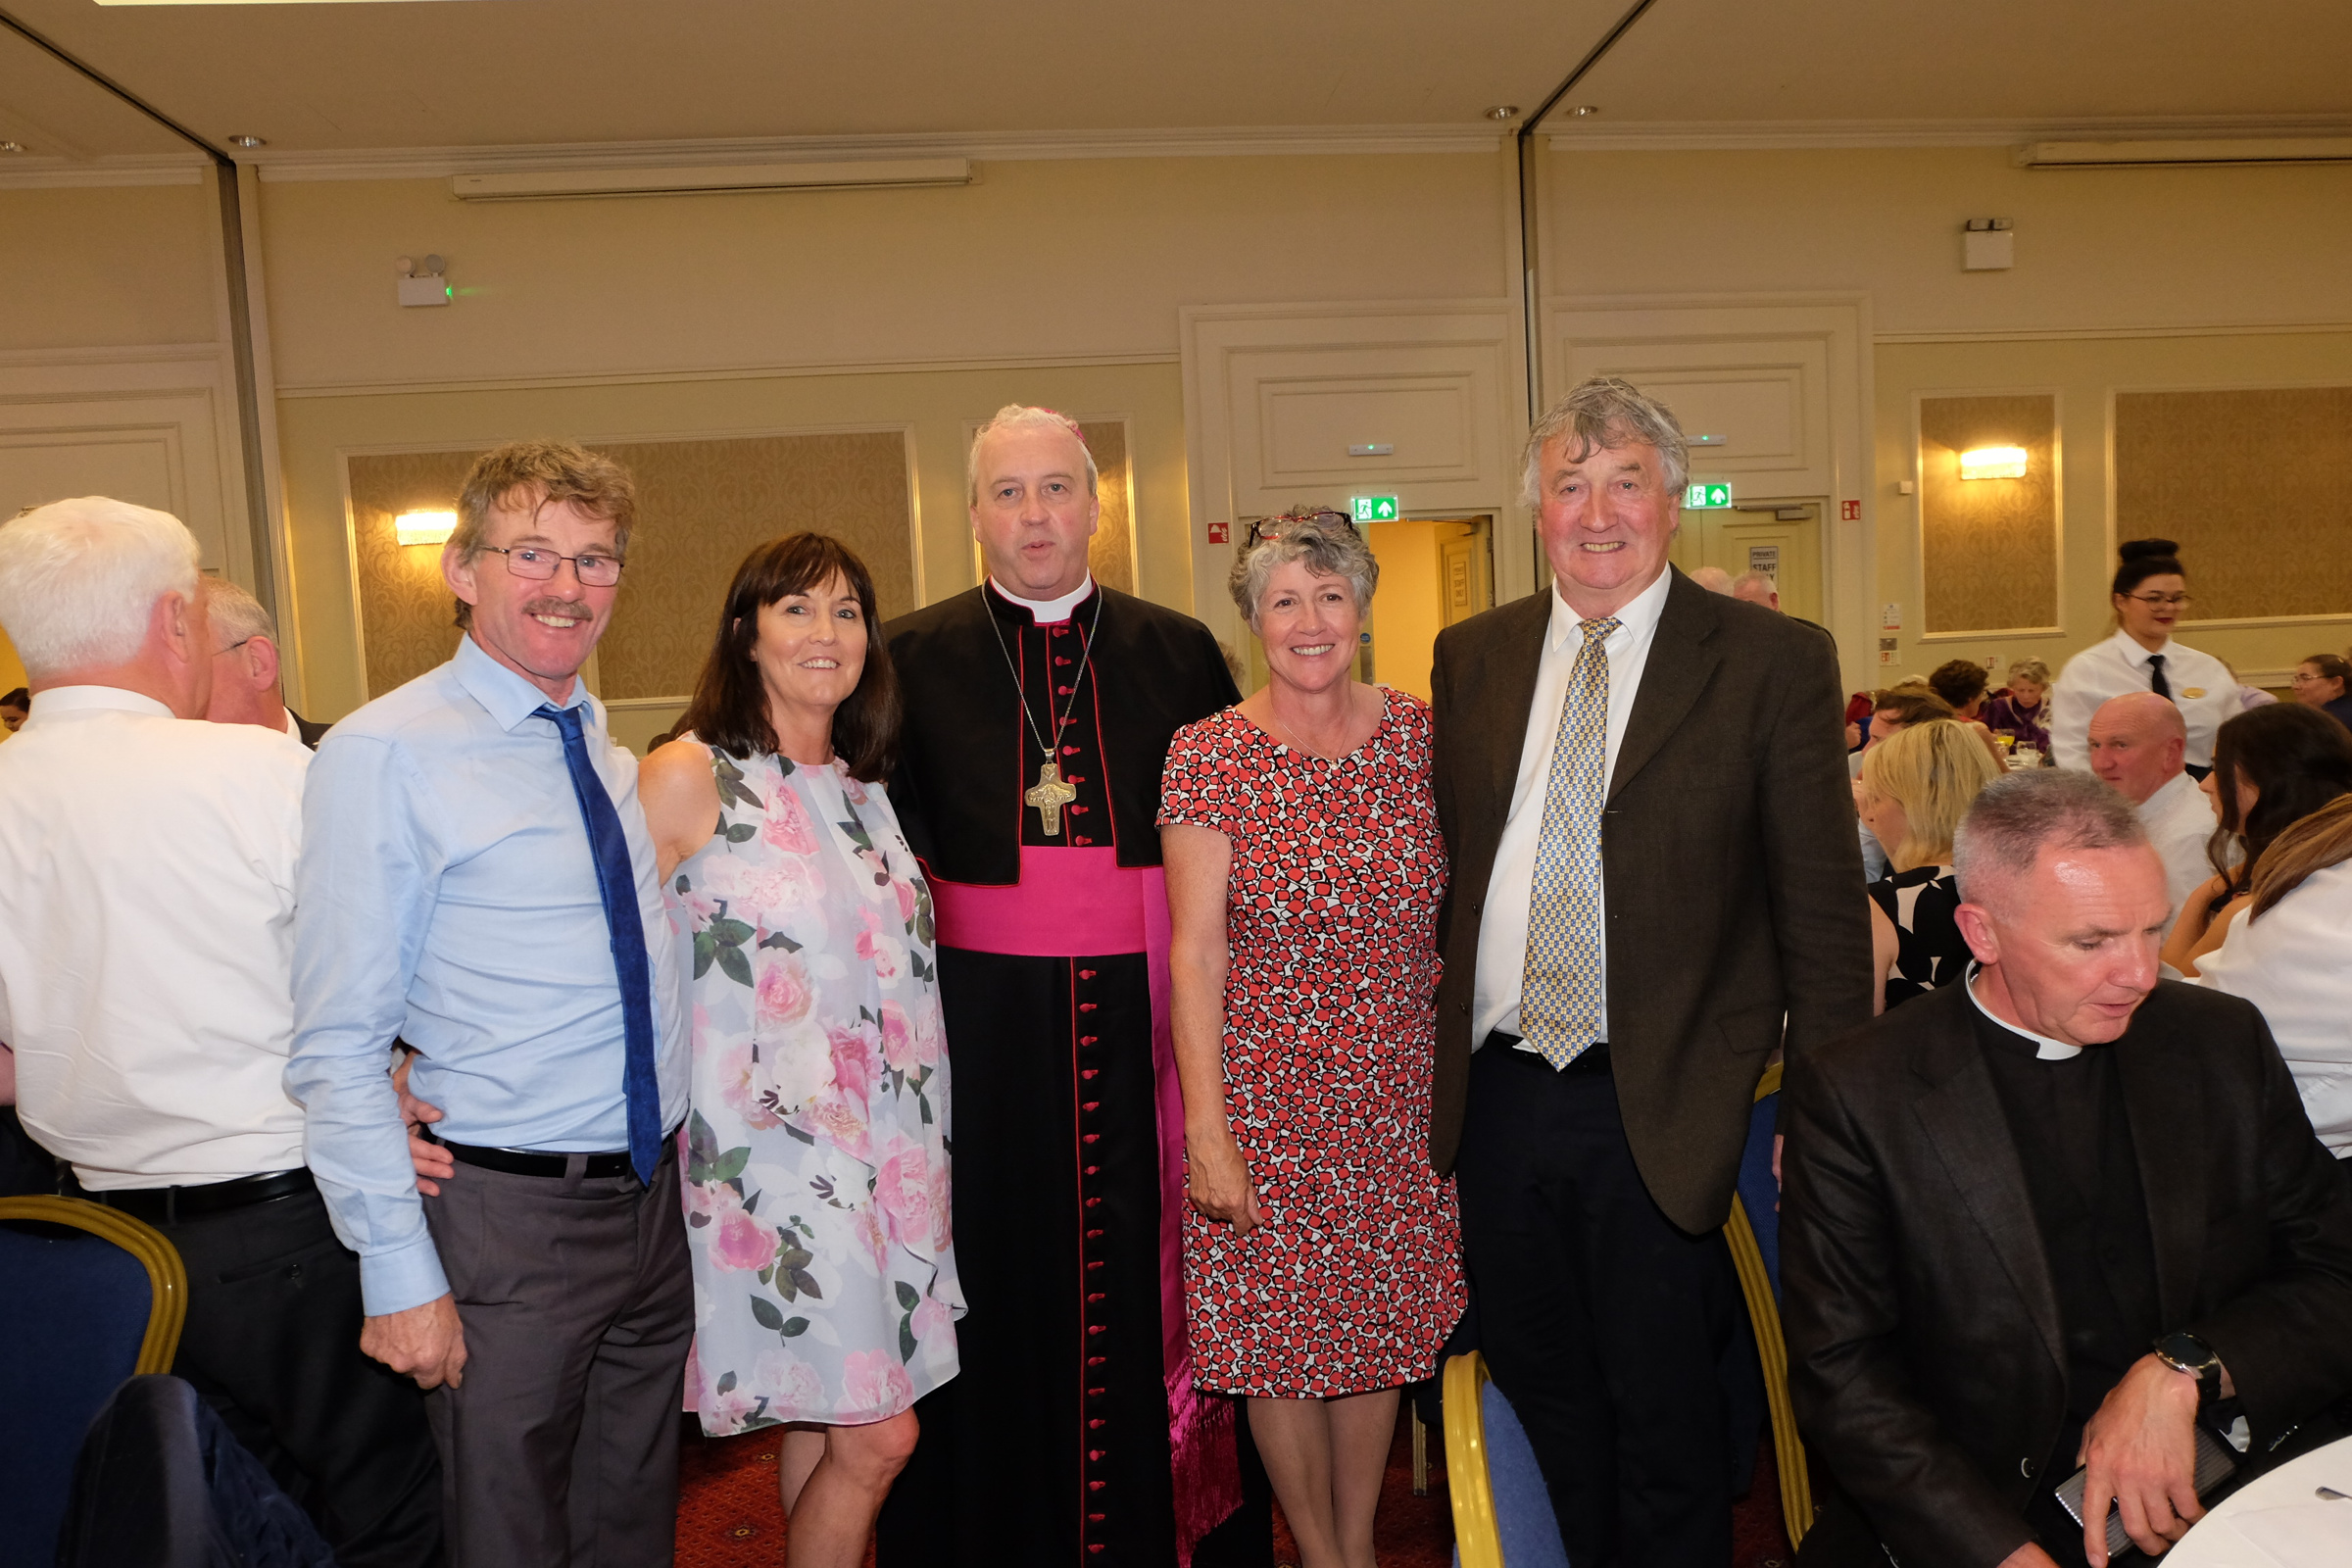 John Joe and Mary Hussey, left, and Bridie and Dermot Dolan with the new Bishop Michael Router at a celebration dinner following the Bishop's Ordination